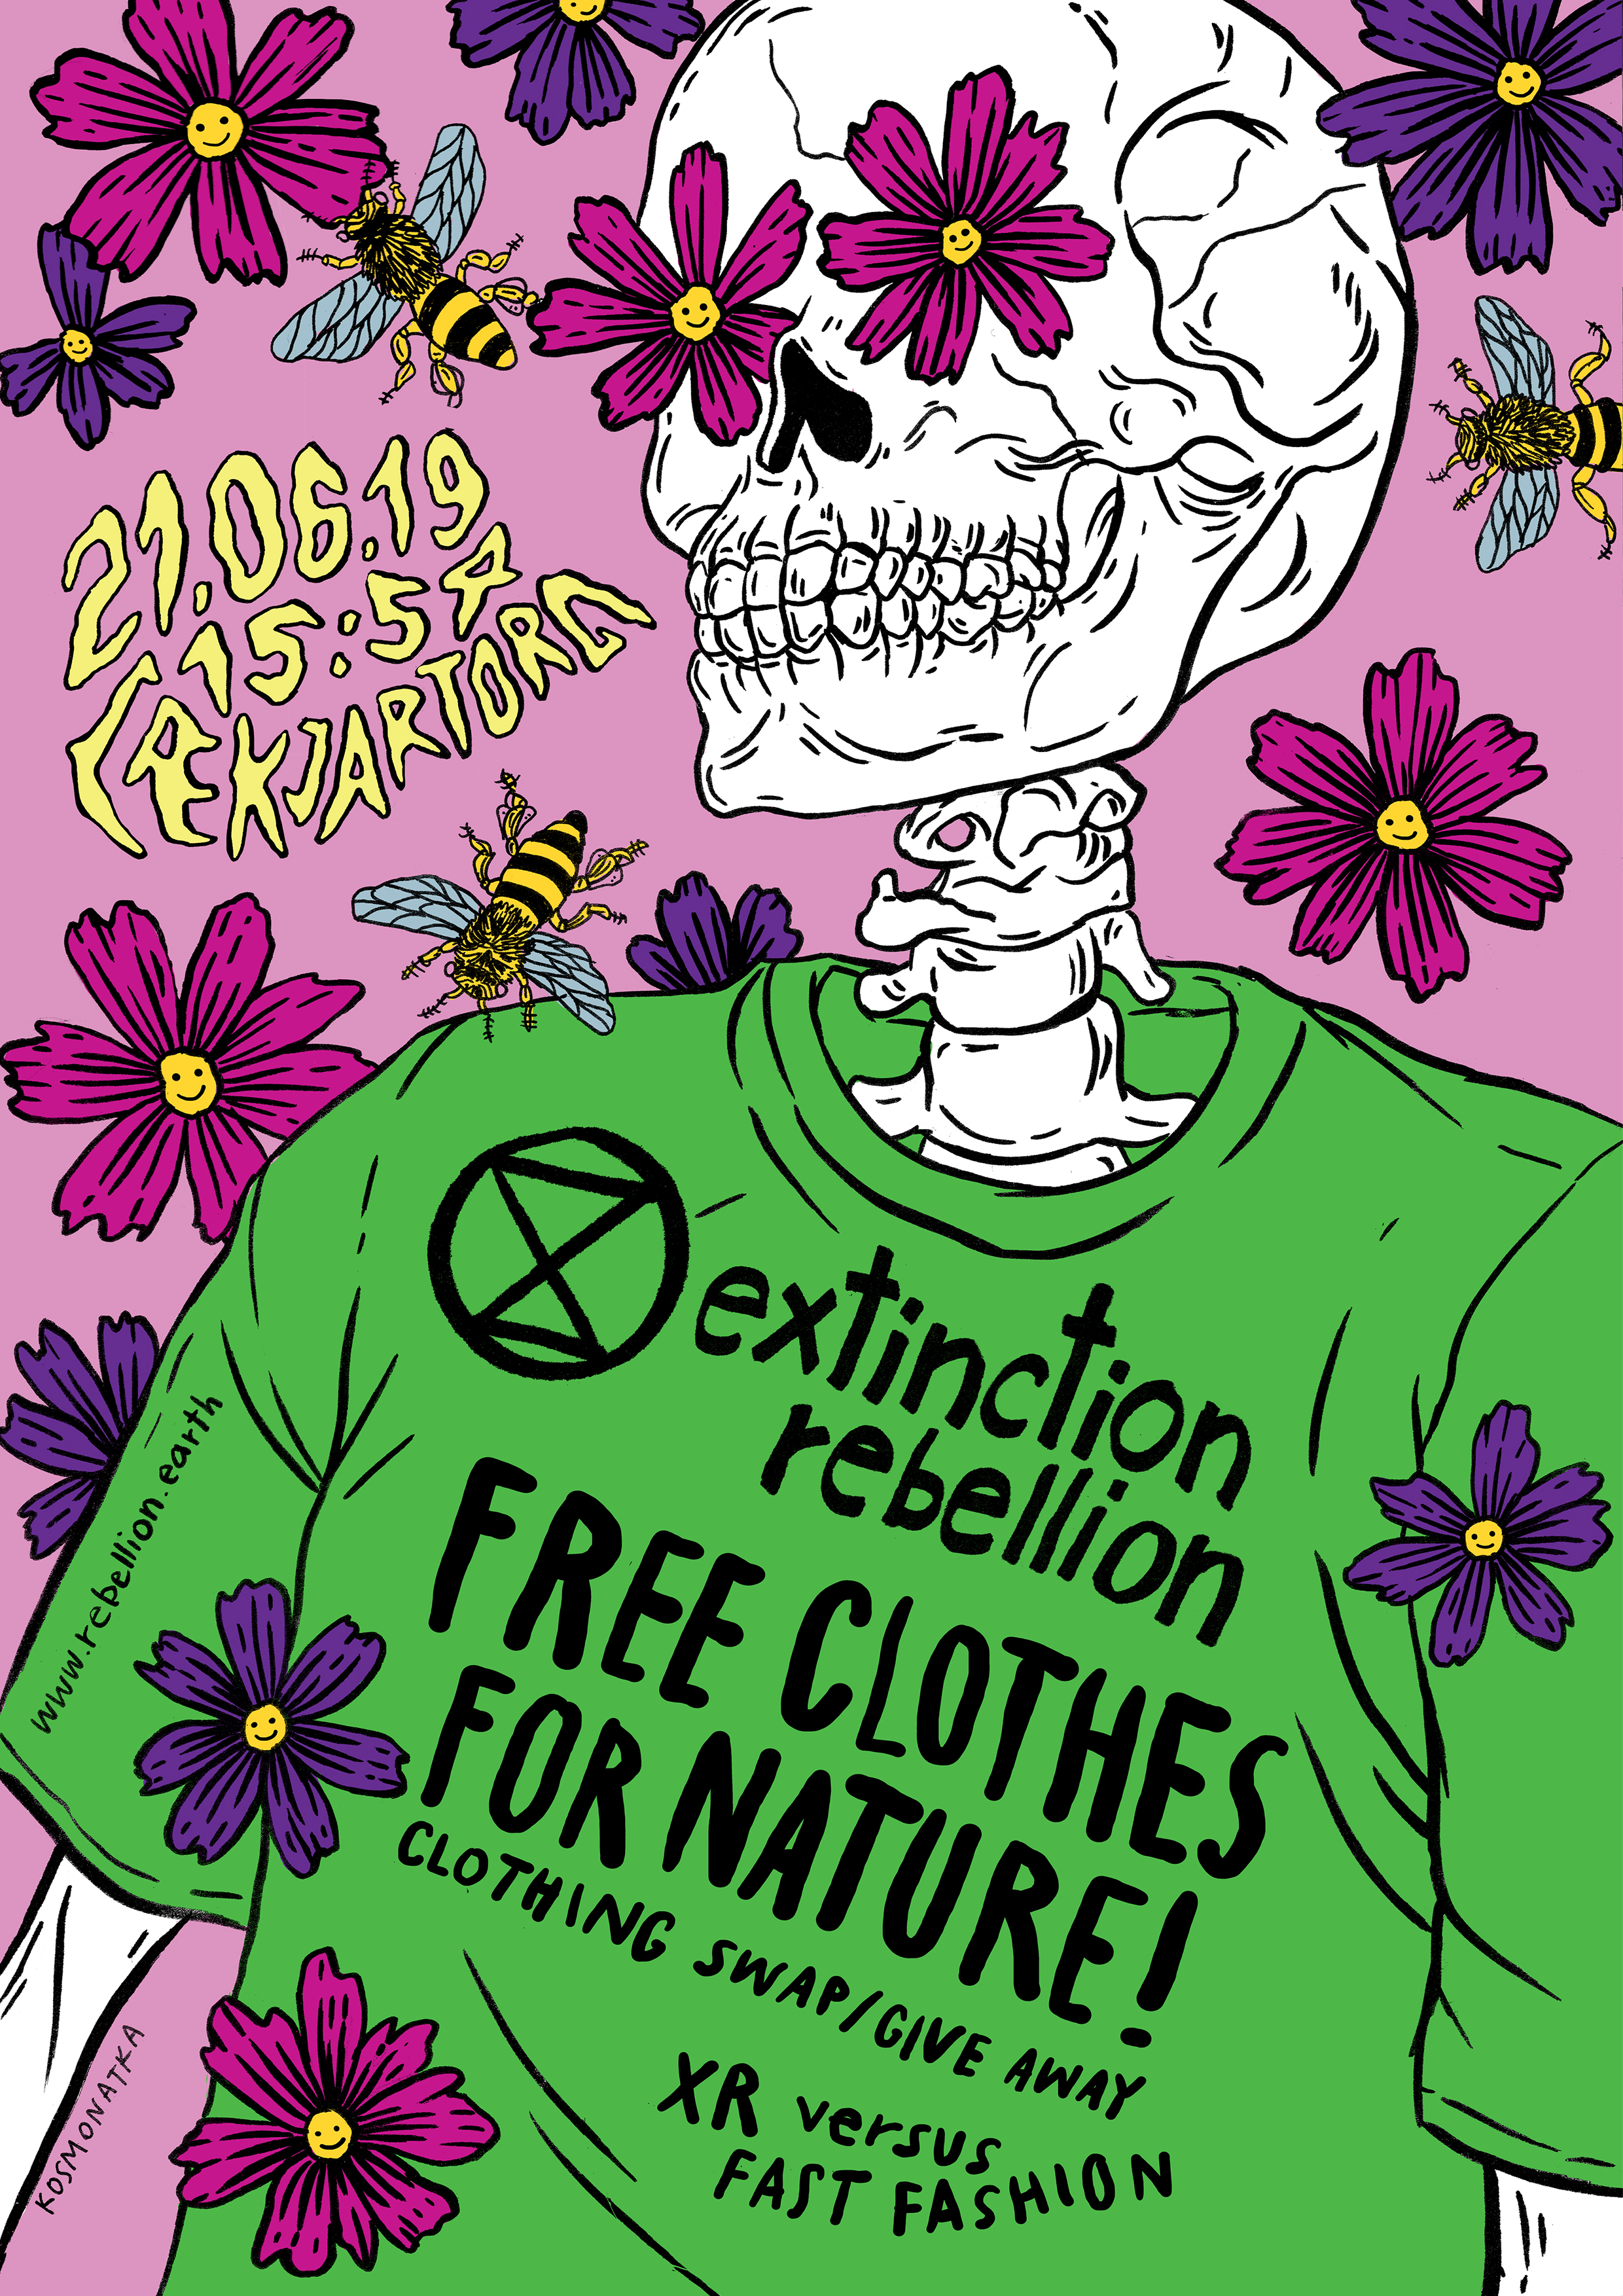 xr_free_clothes_for_nature_a4.jpg